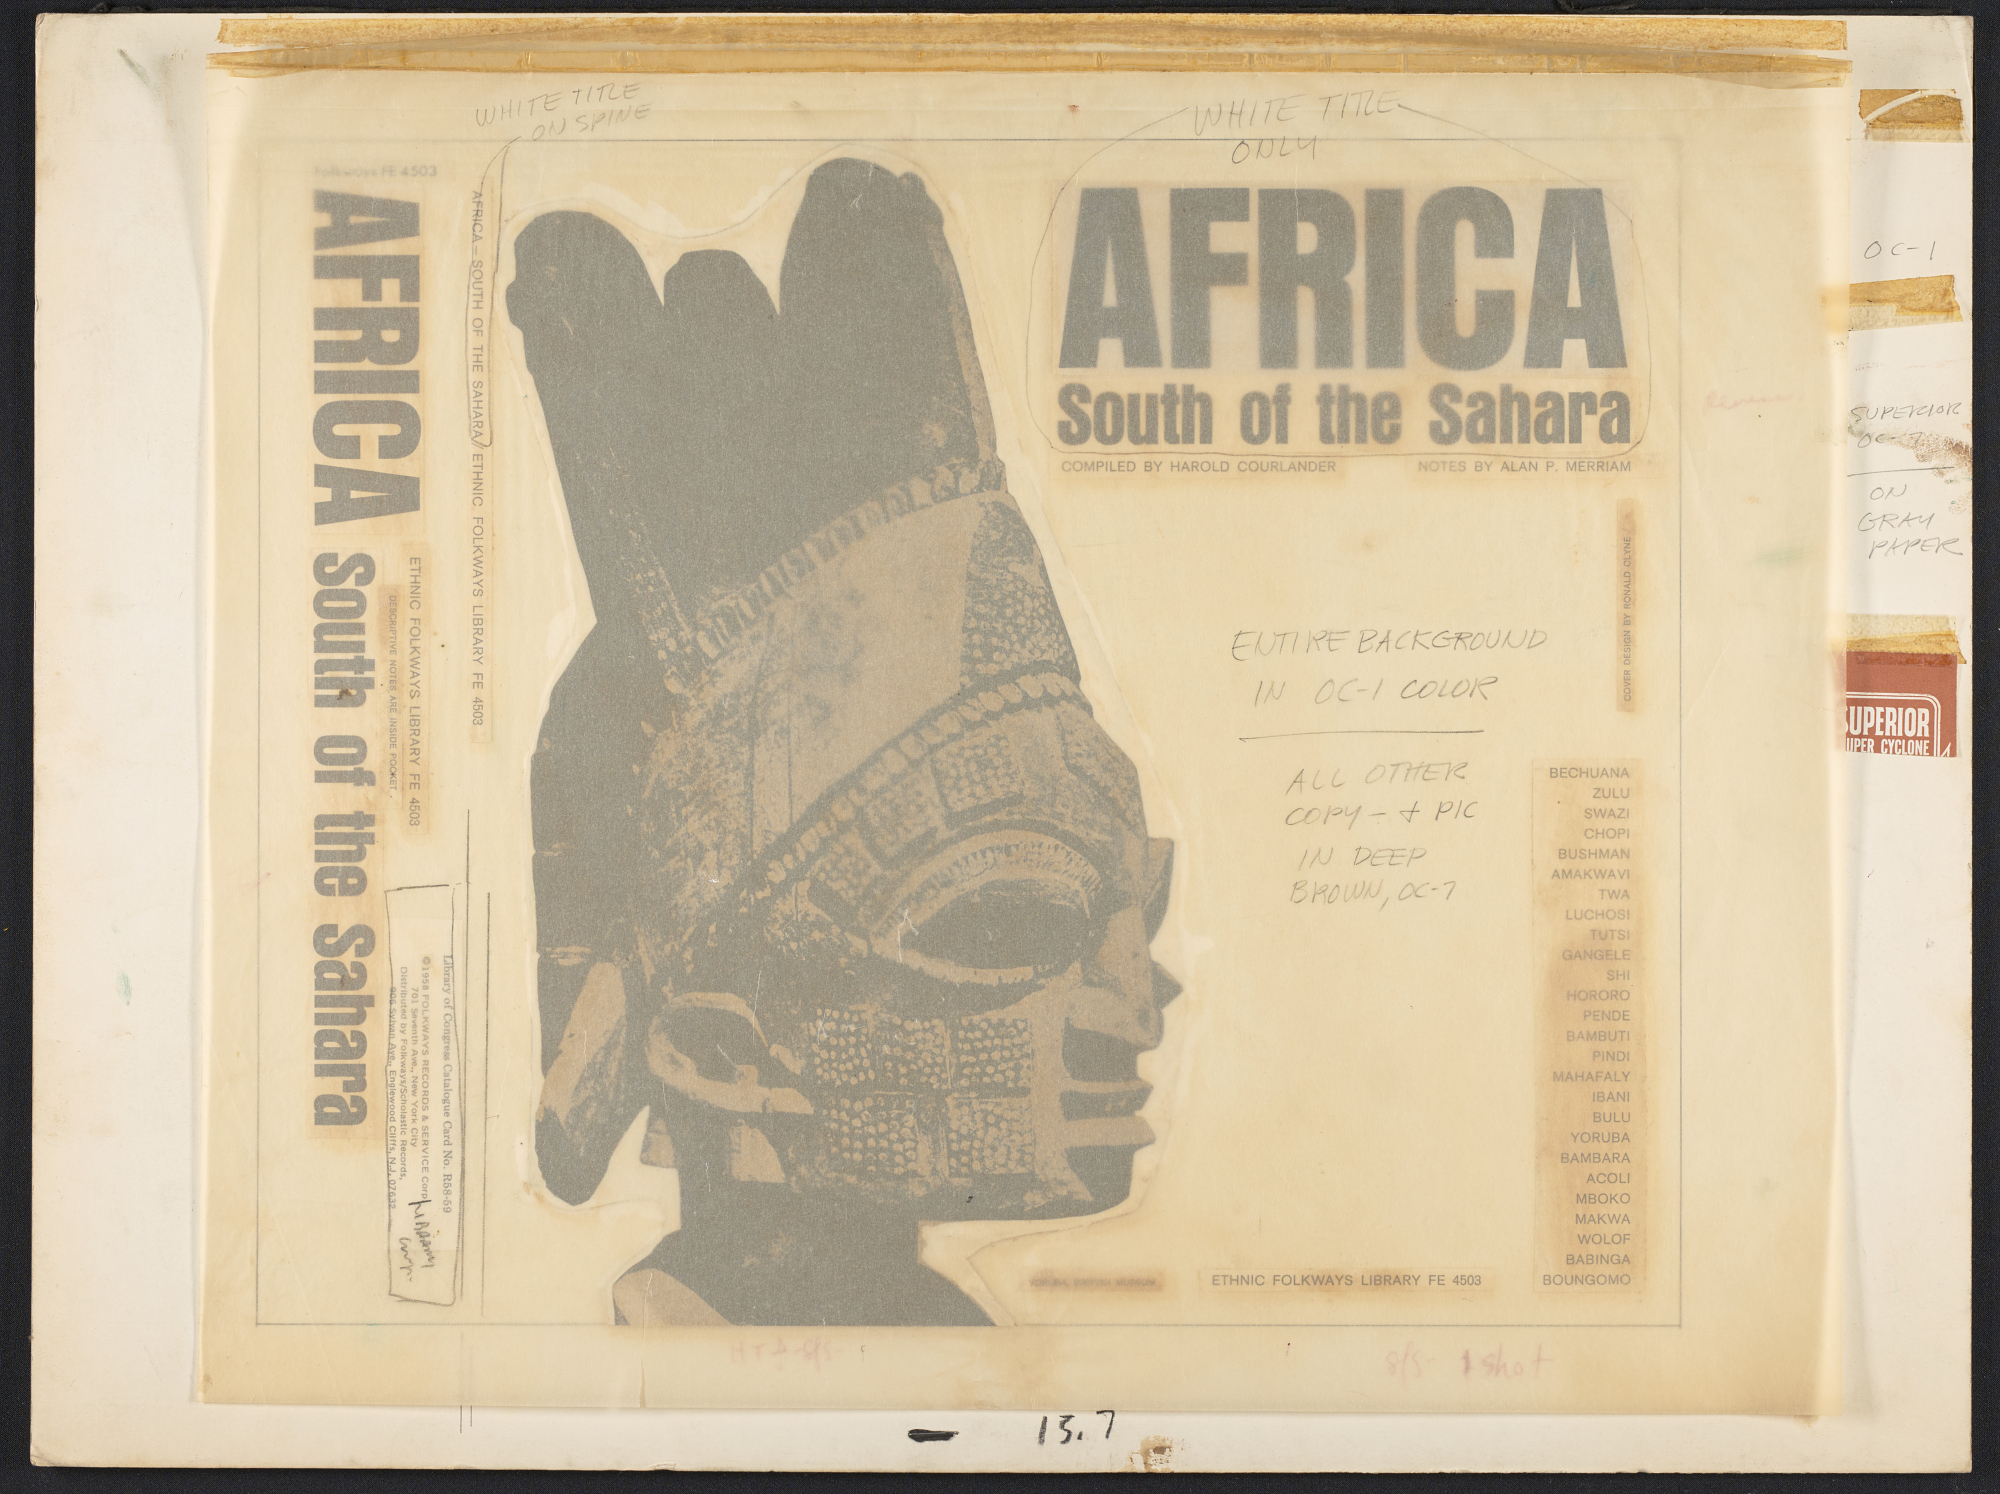 Africa south of the Sahara [sound recording] / compiled by Harold Courlander ; notes by Alan P. Merriam